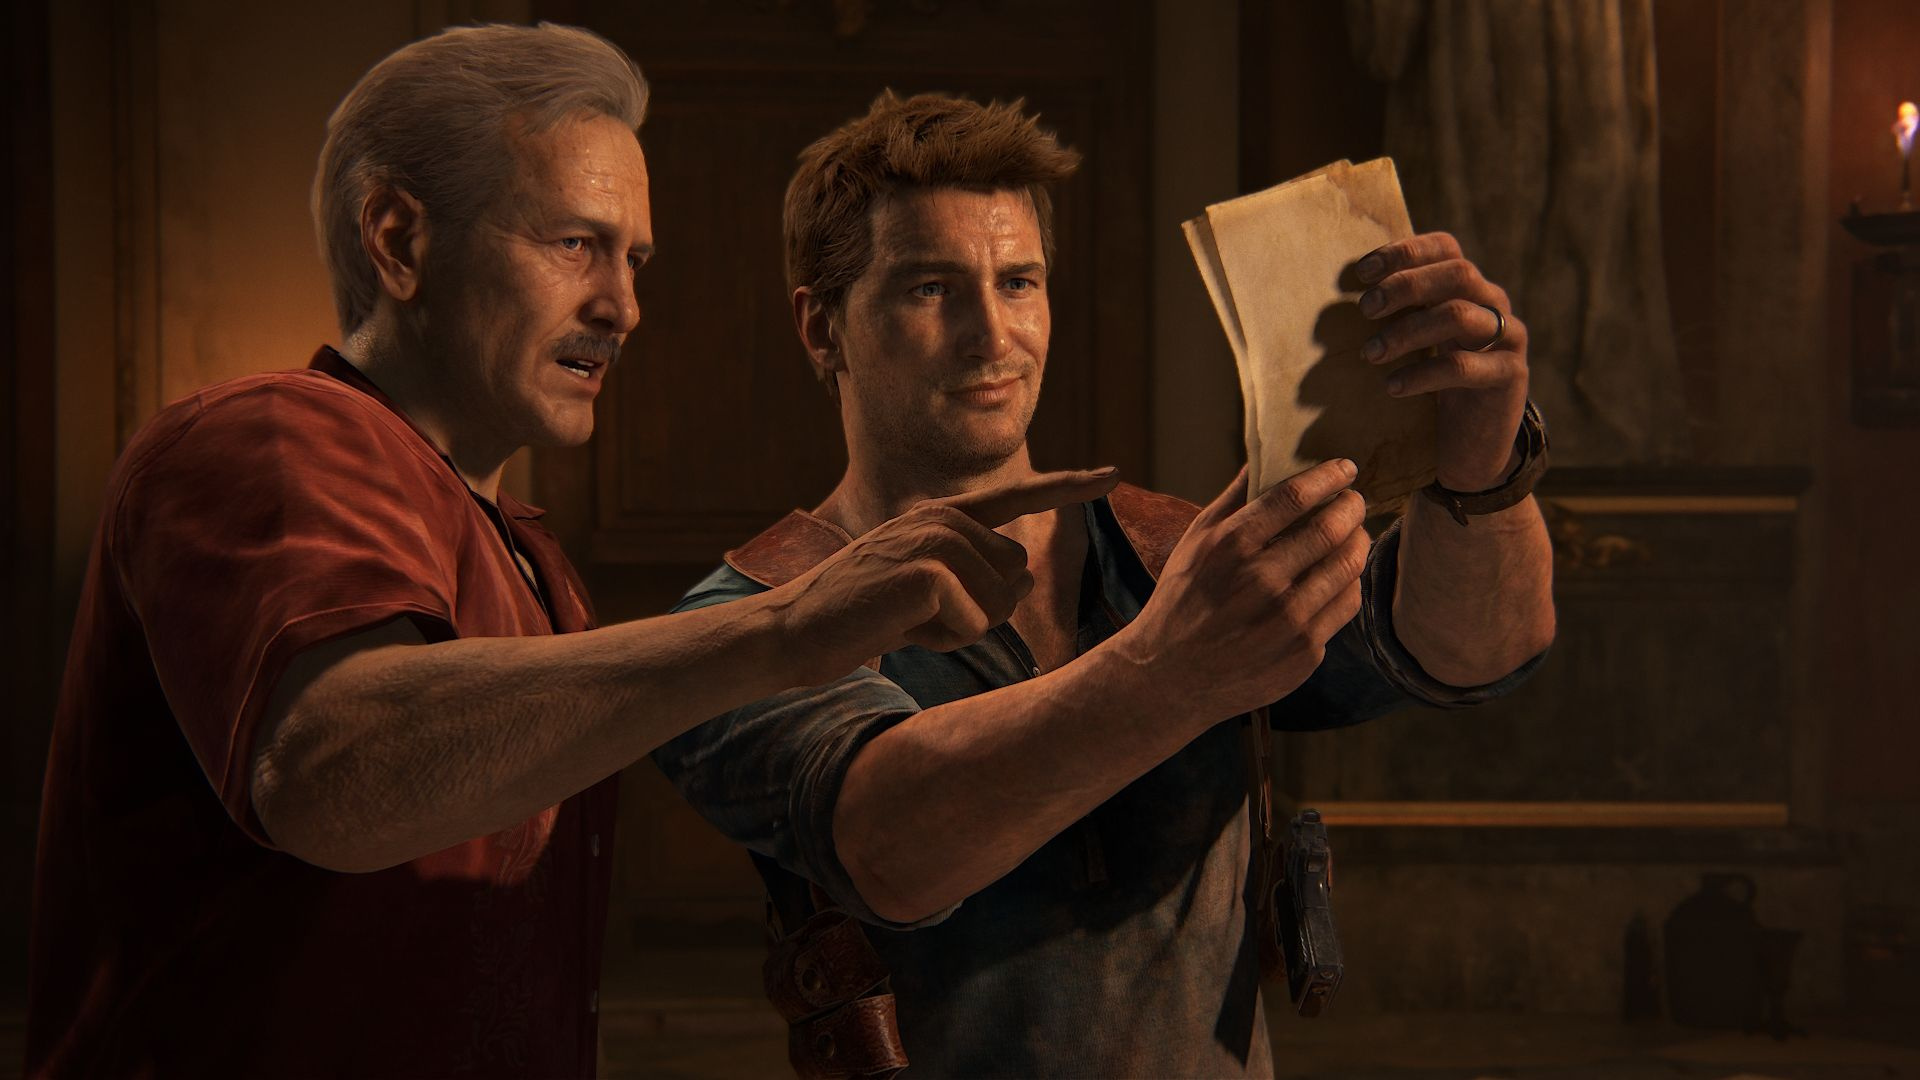 Sony: We'll Never Stop Making Single Player, Story-Driven Games